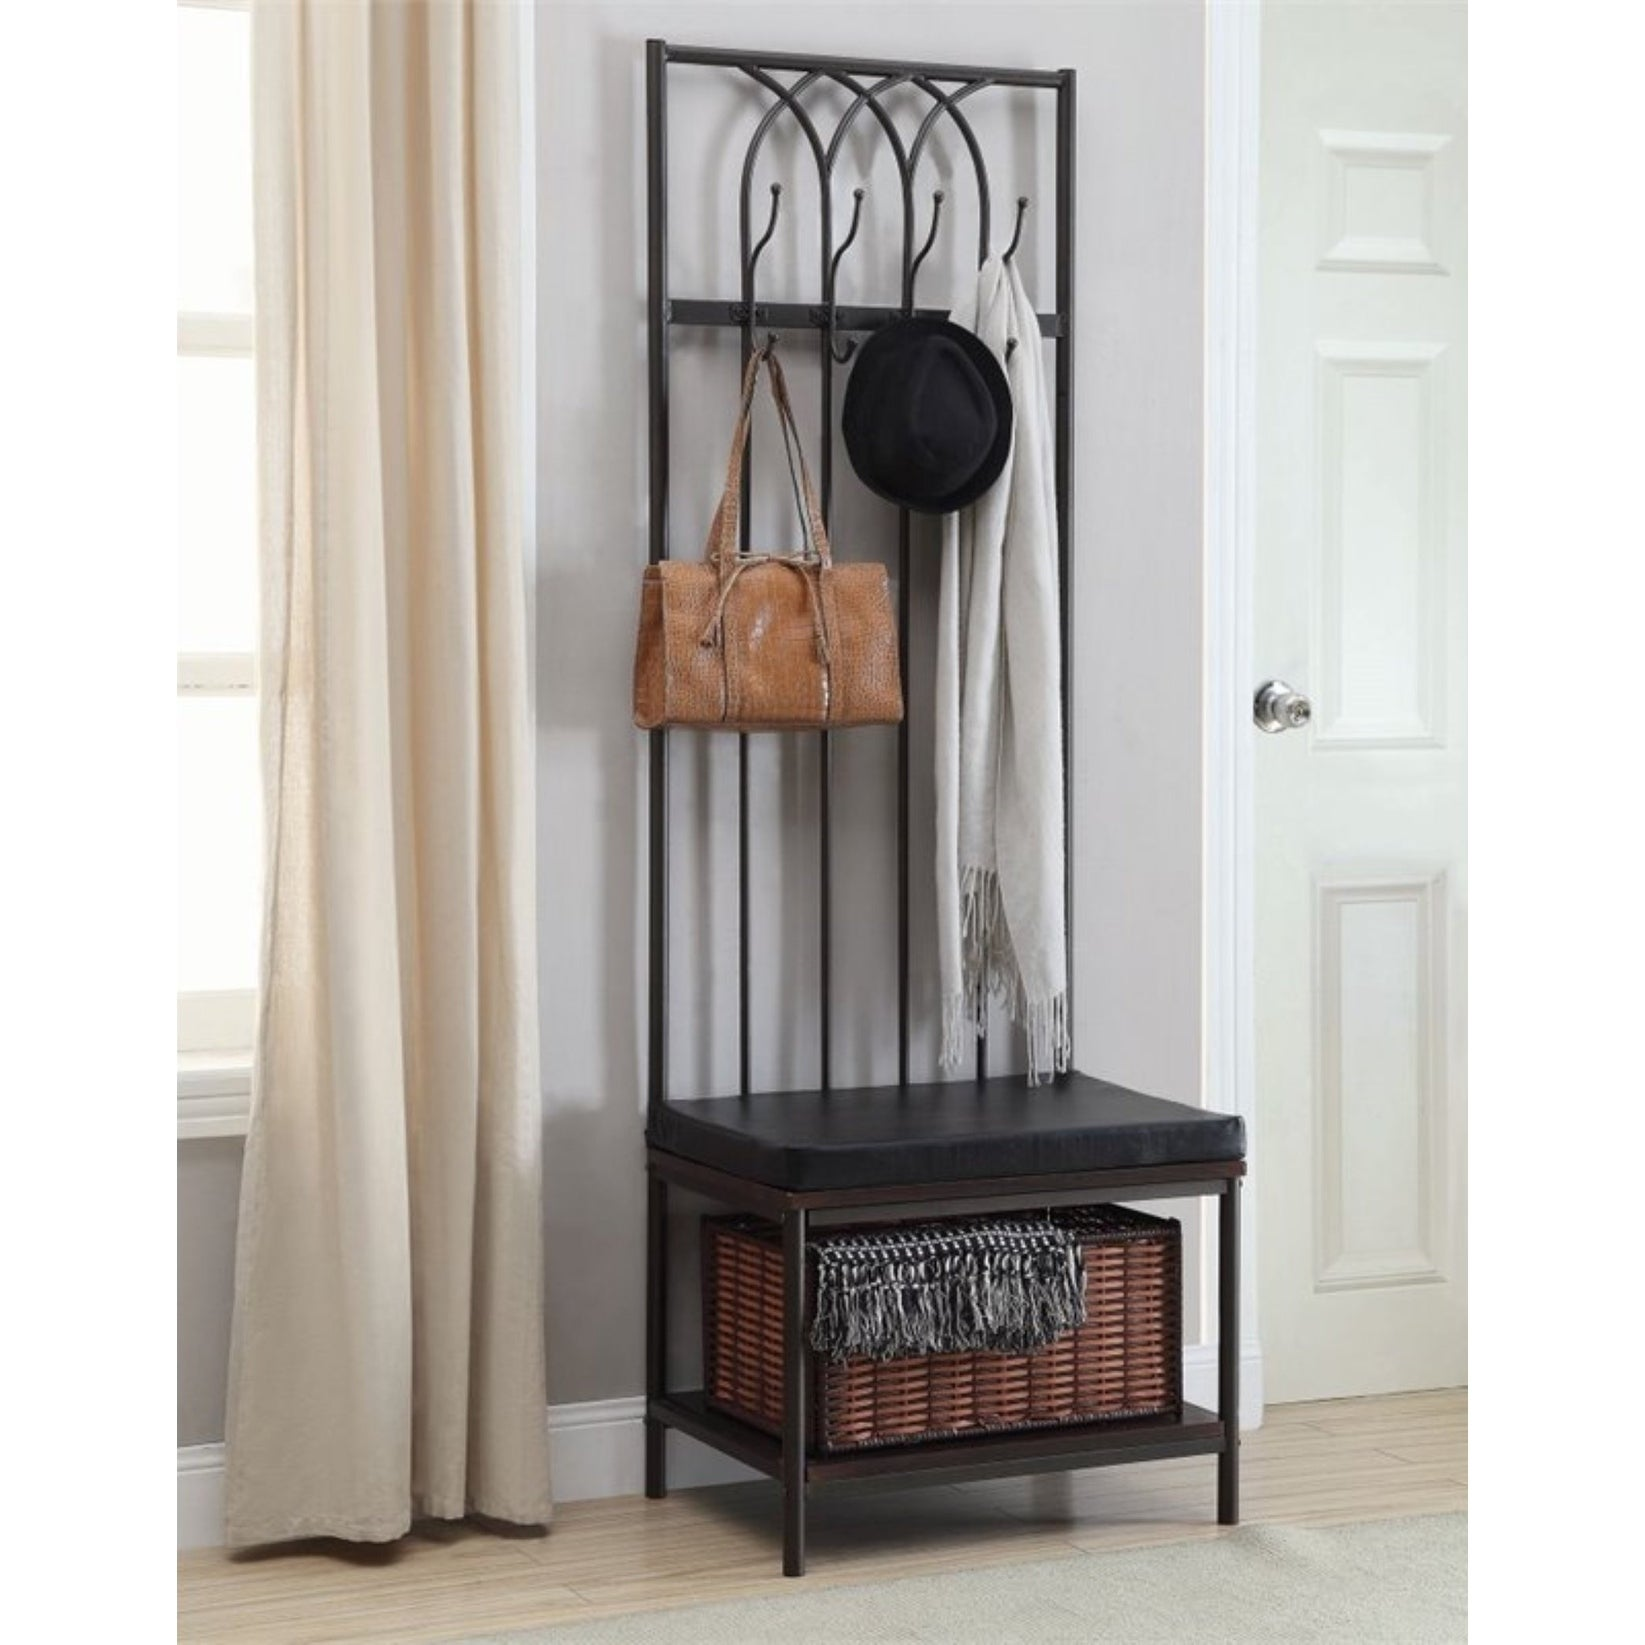 Enjoyable Transitional Hall Tree Coat Rack With Storage Bench Ibusinesslaw Wood Chair Design Ideas Ibusinesslaworg